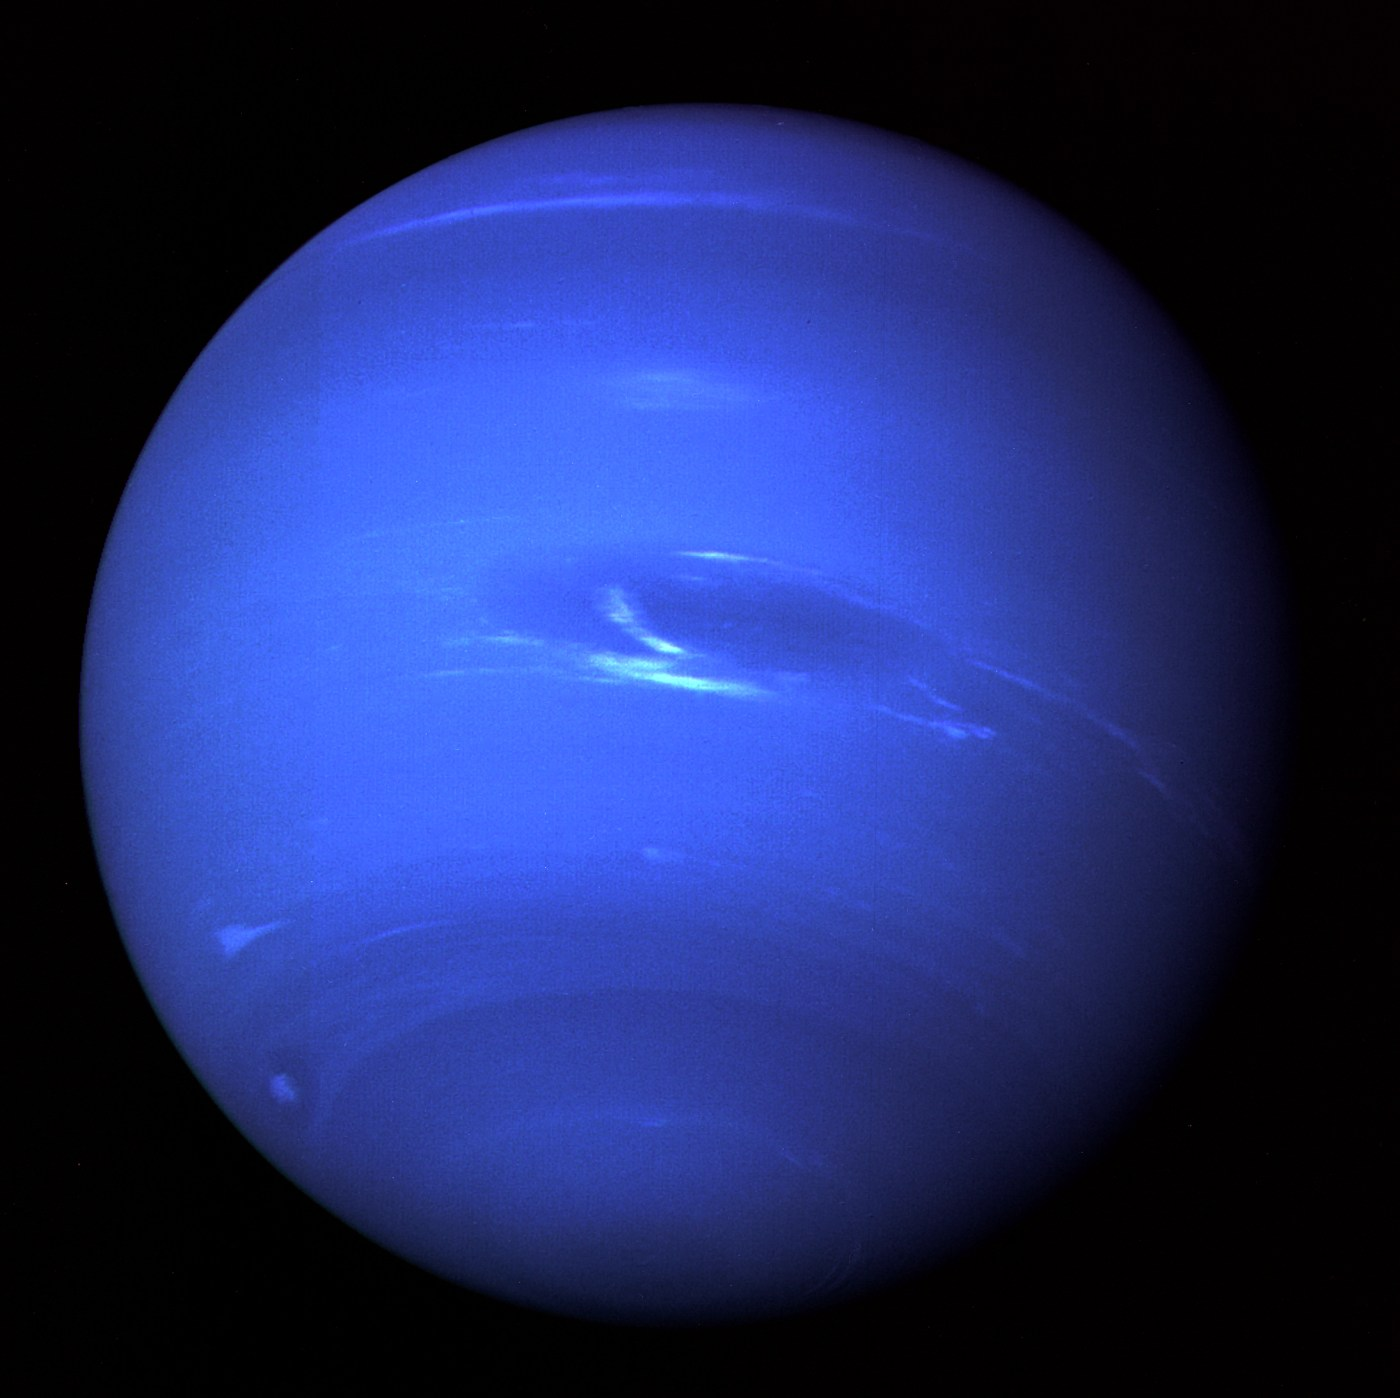 What's the weather like on Uranus and Neptune? 4